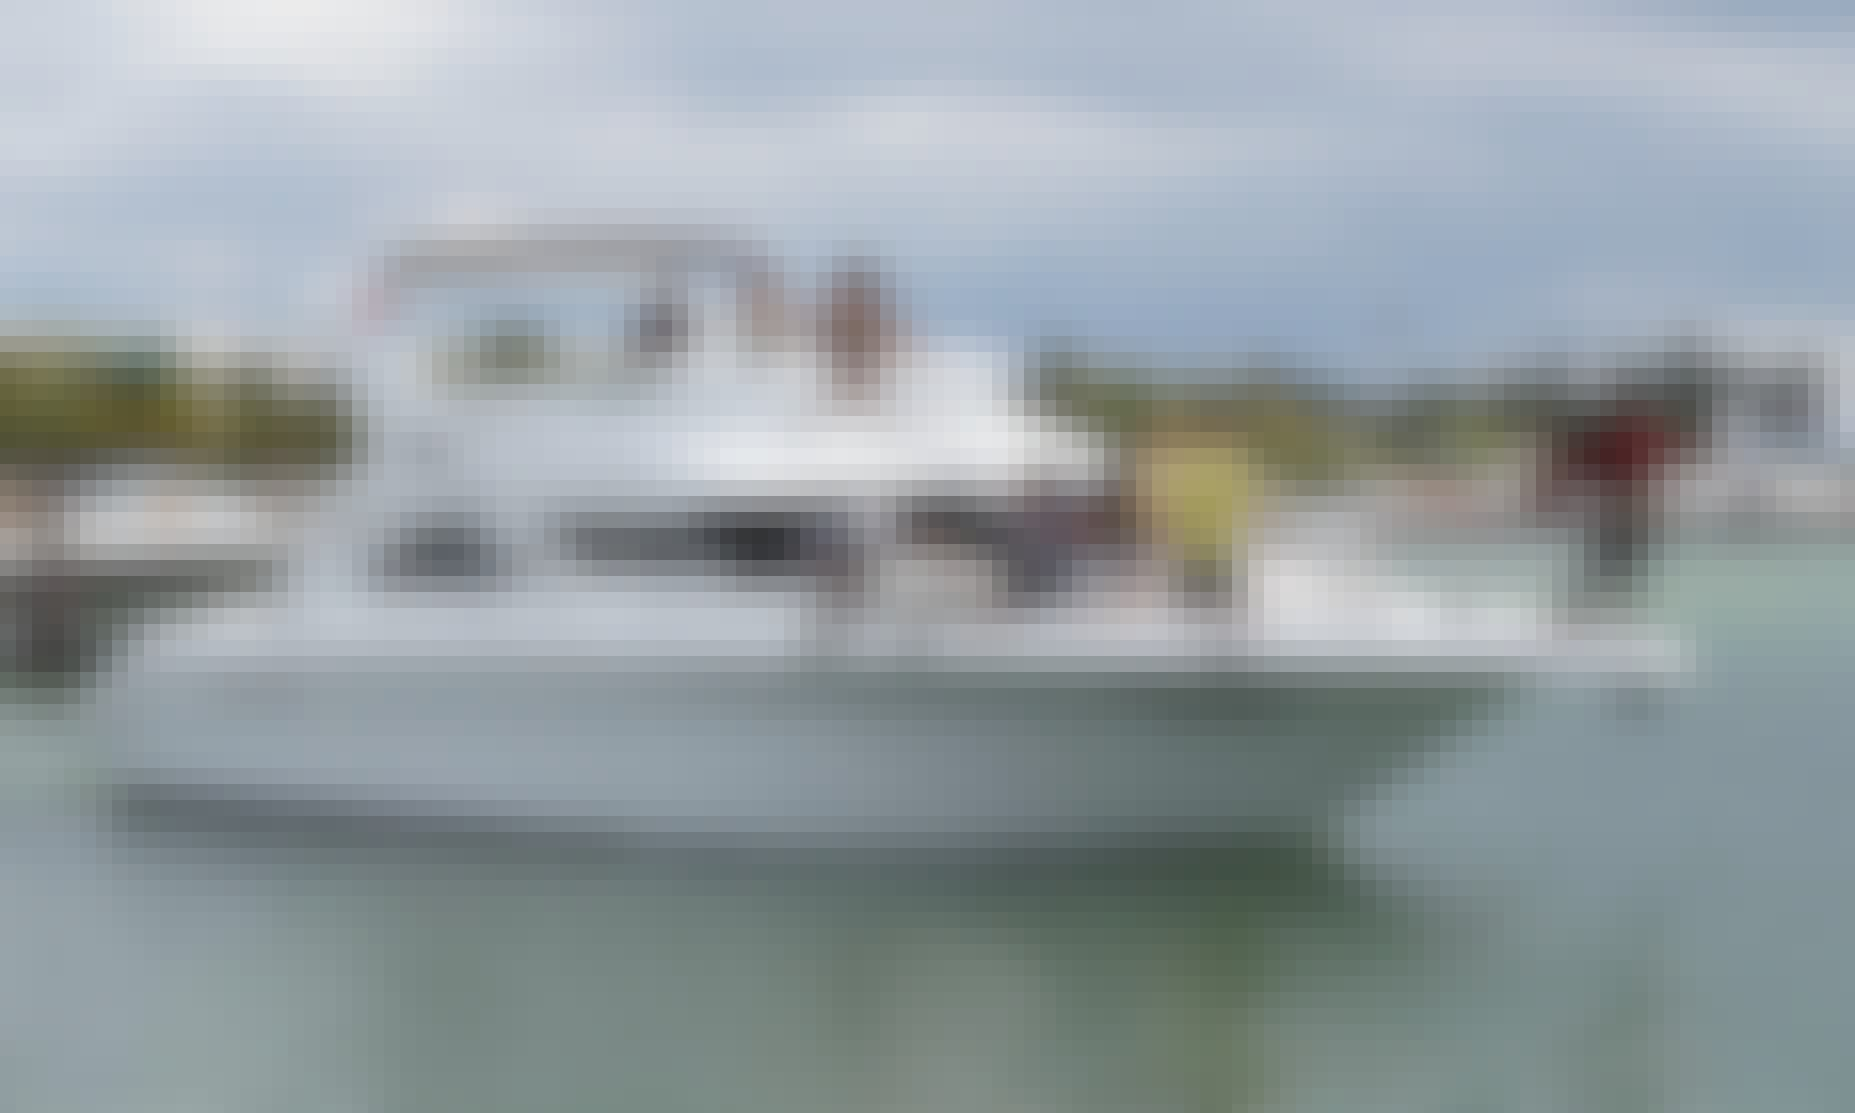 46ft SeaRay Luxury Yacht with Captain for Charter in Cancun, Quintana Roo